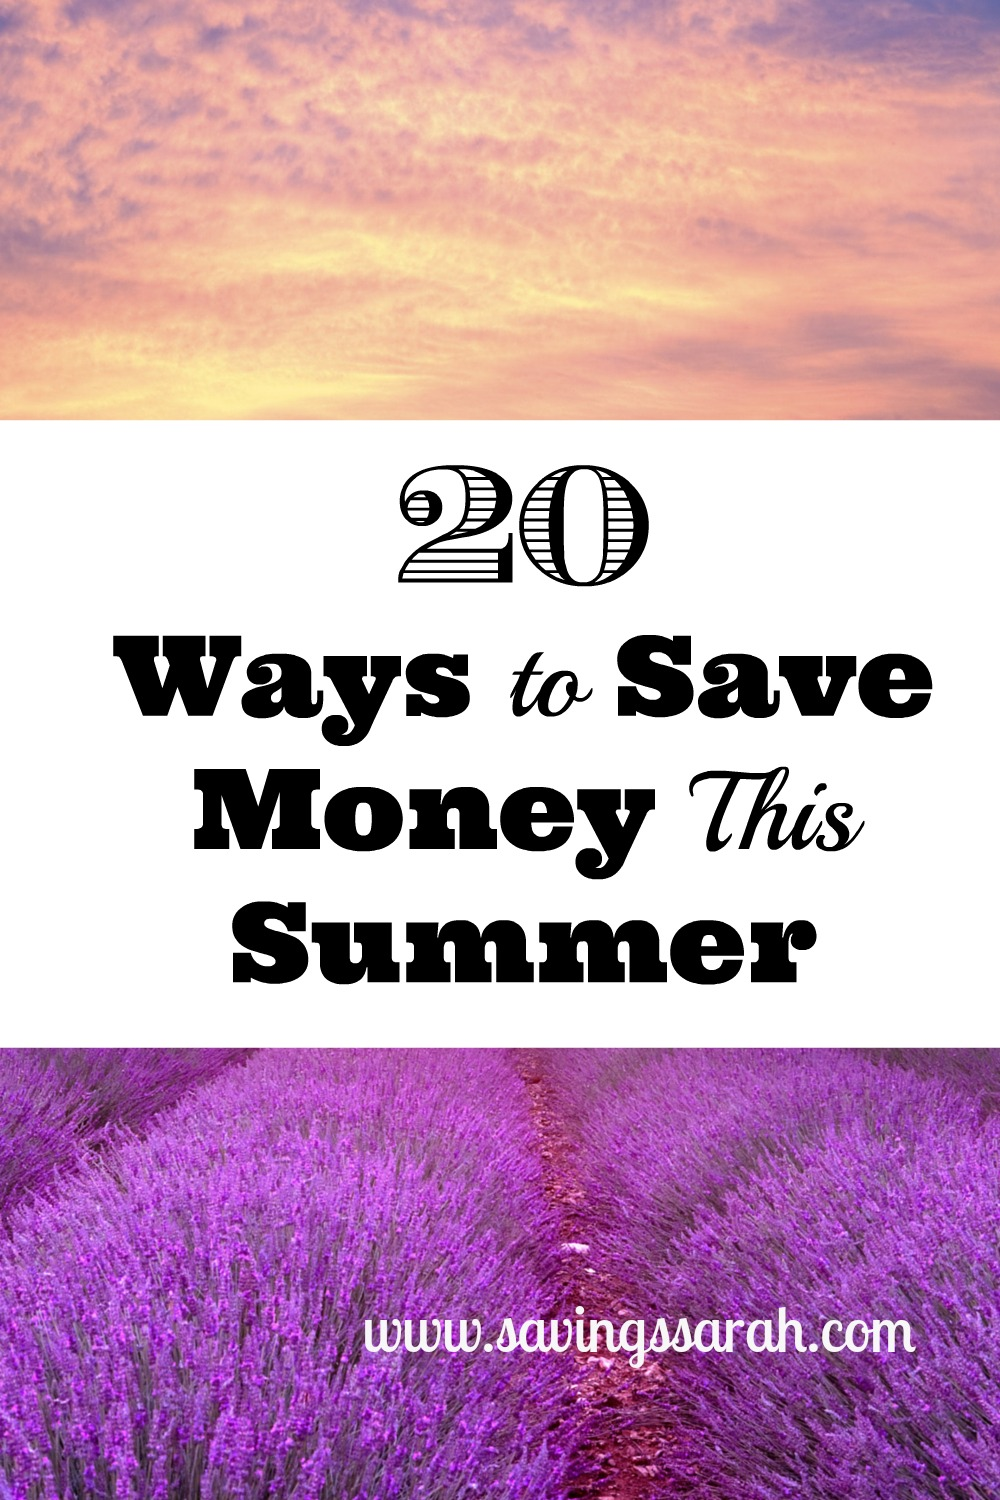 20 Ways to Save Money This Summer